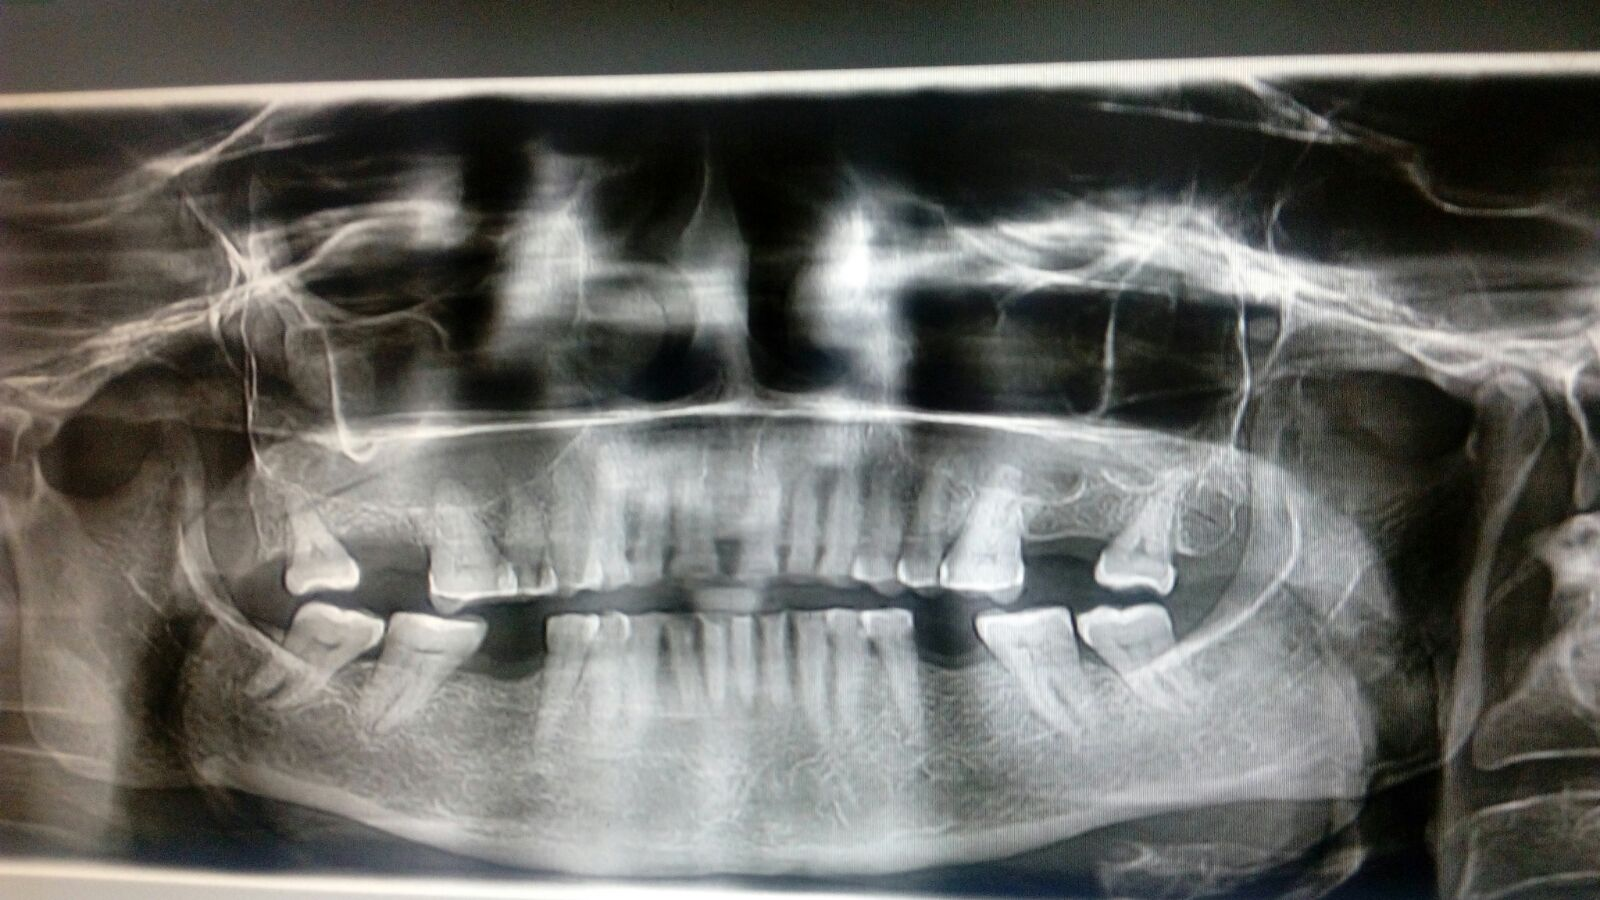 Spot findings in Dental X-ray